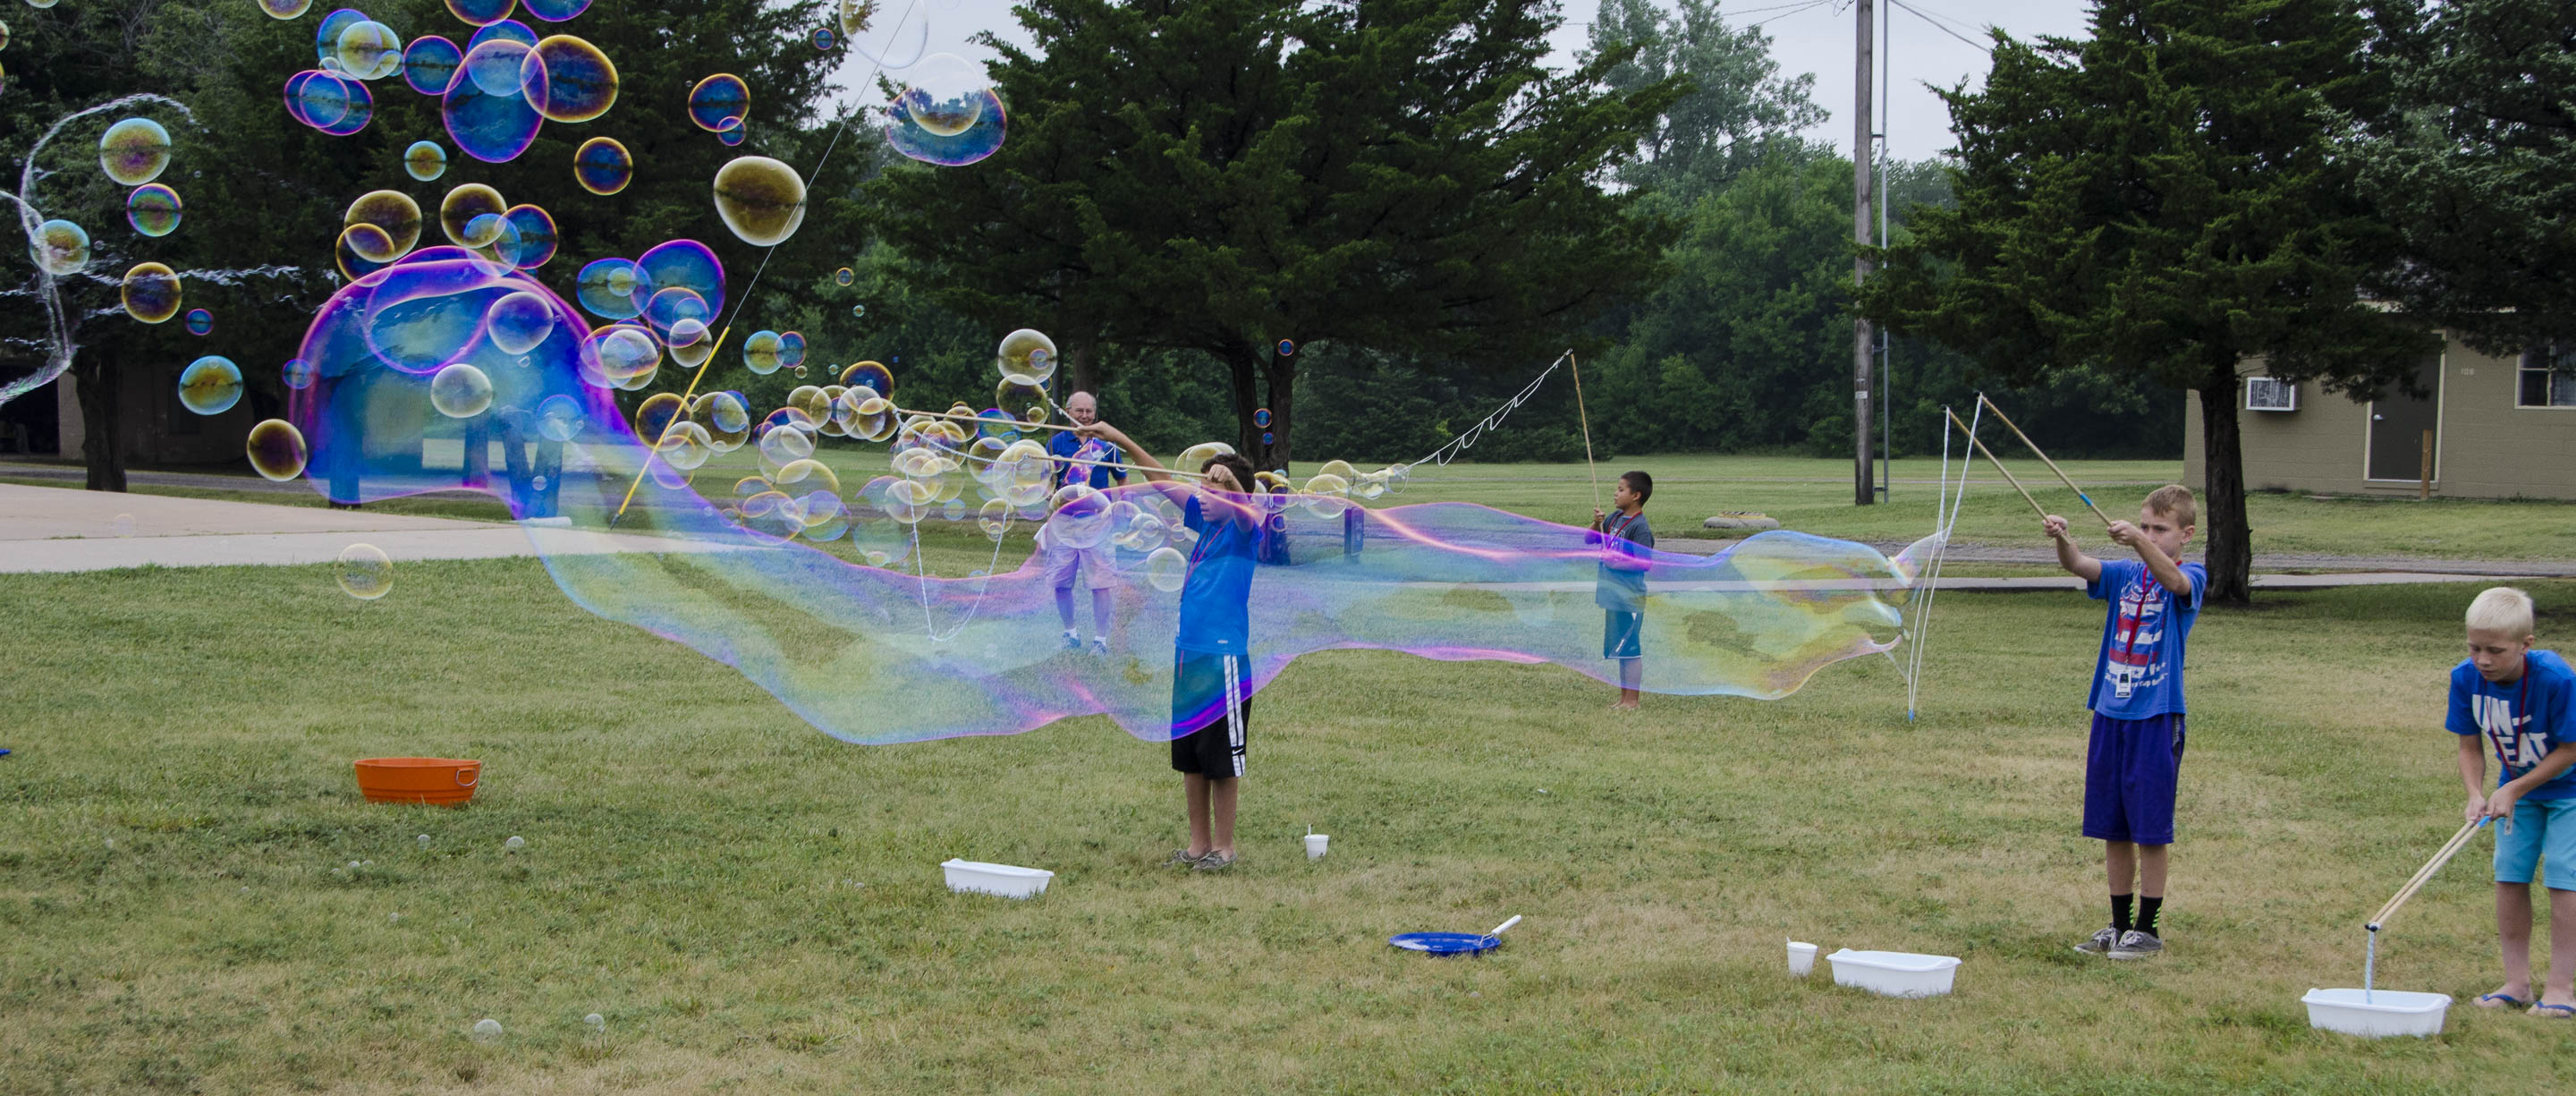 Children's Camp group bubbles